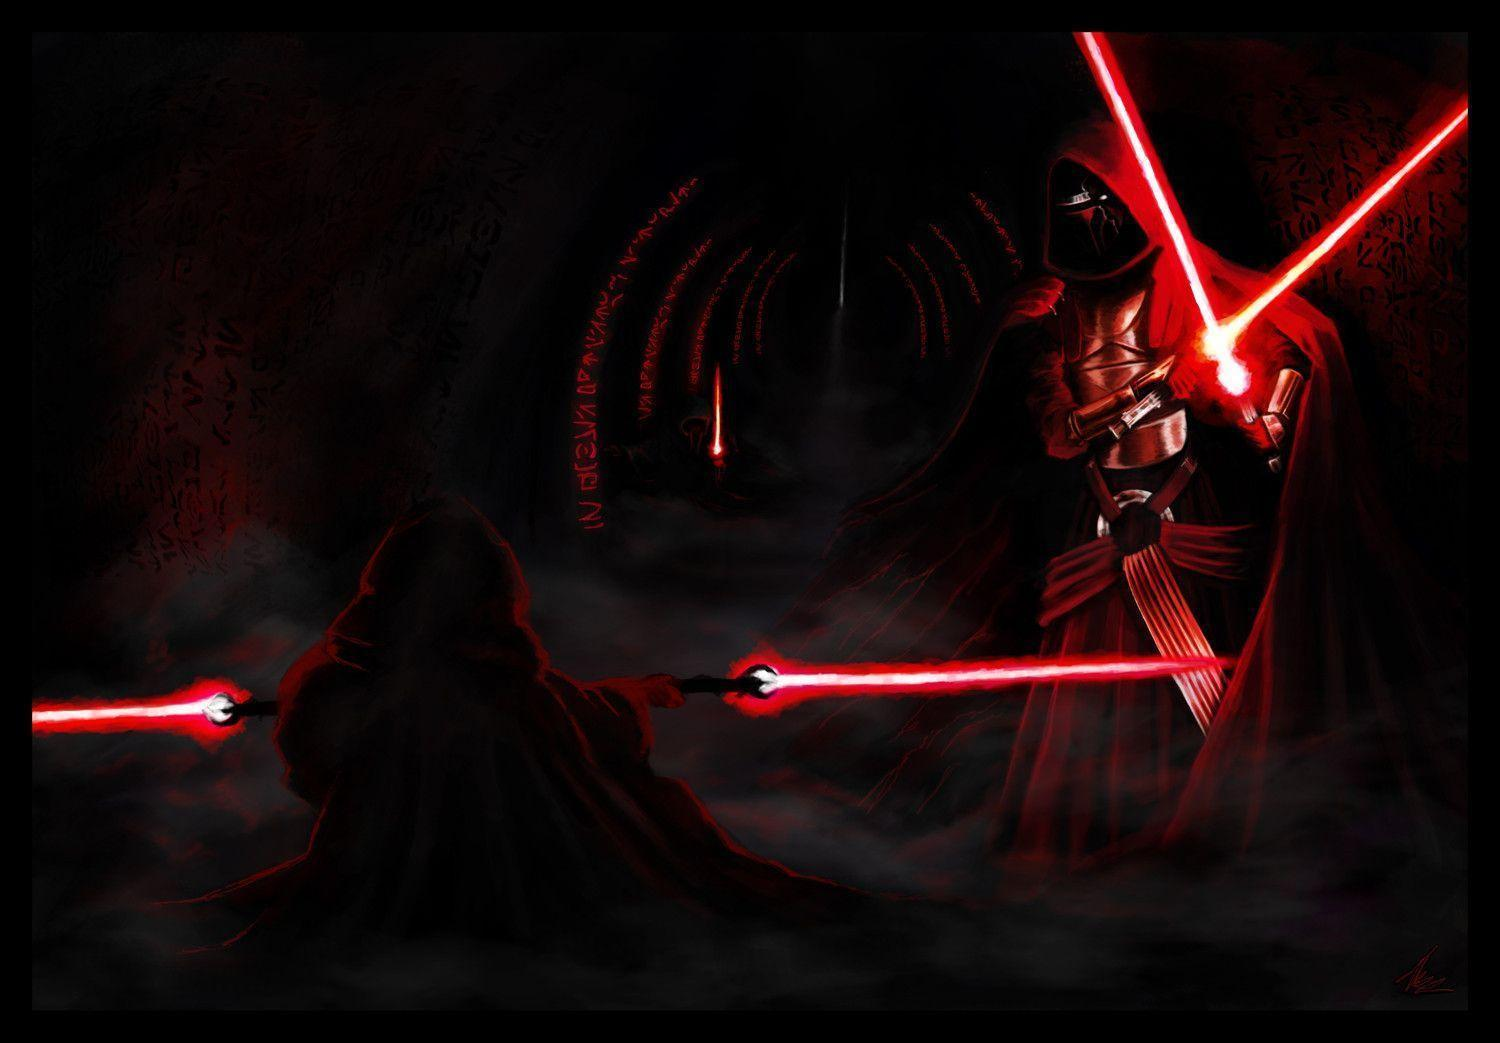 Star Wars Sith Wallpaper 1920x1080: Star Wars Sith Wallpapers